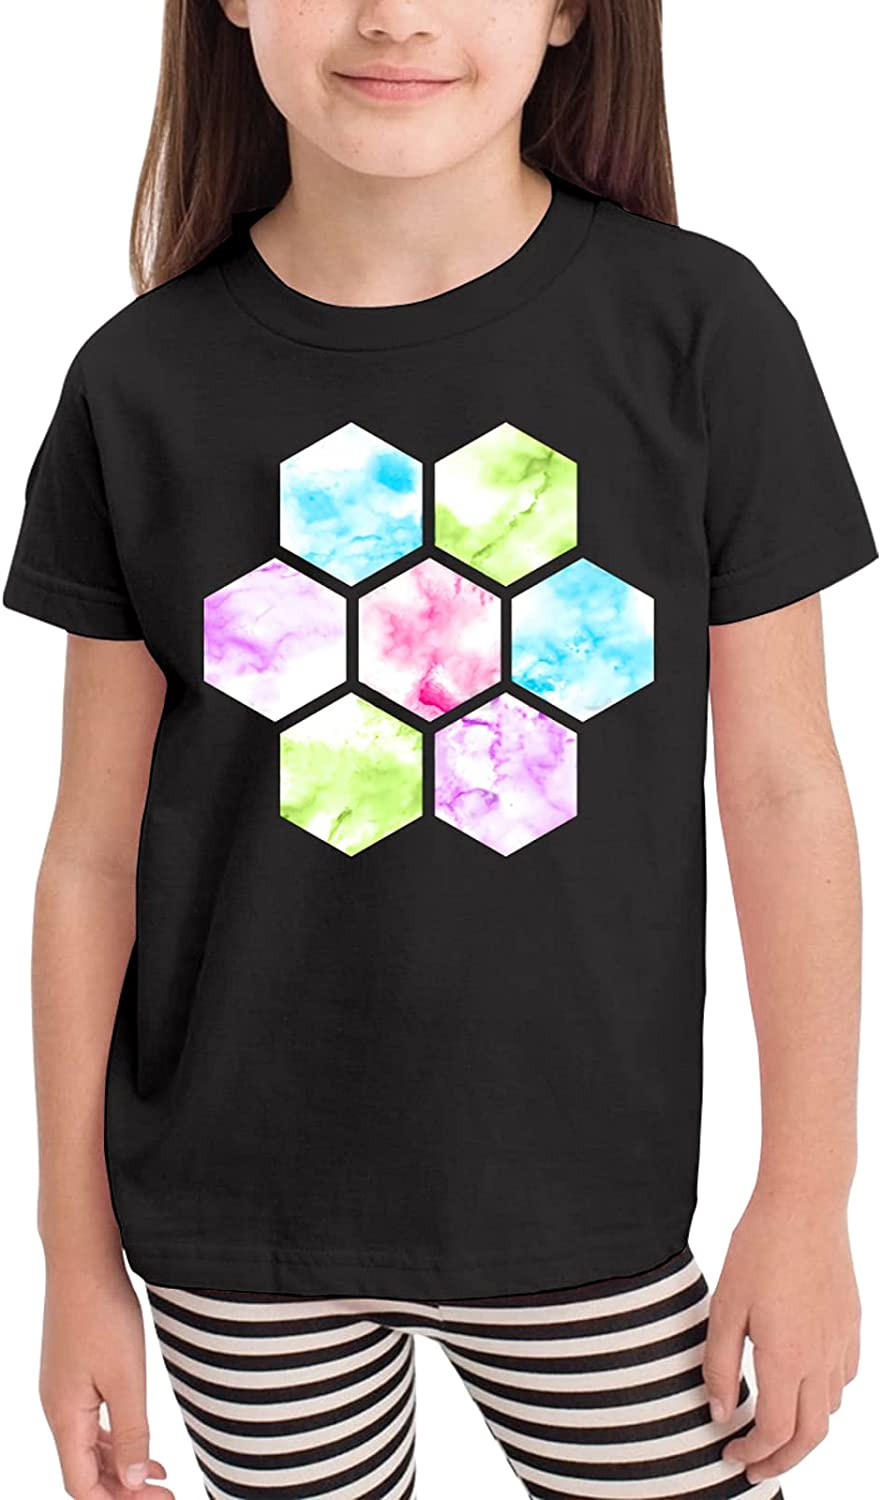 Marble Honeycomb Watercolor Children's T-Shirt,Short Sleeve Cotton Shirts Boys Girls Tee Tops for Summer